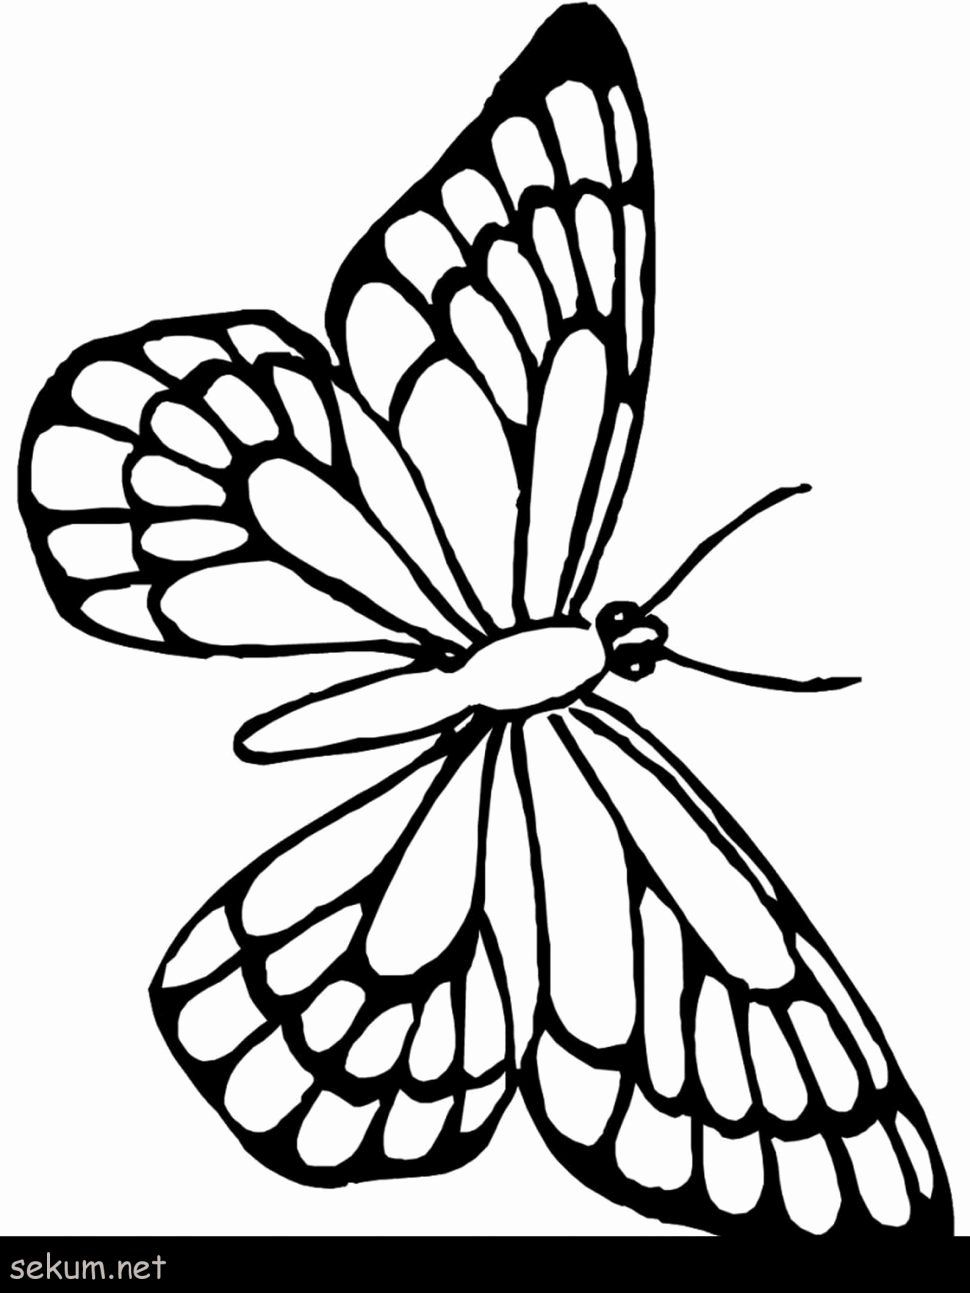 Butterfly Coloring Book For Adults Inspirational Coloring Pages Butterfly Coloring Books For Adul In 2020 Butterfly Coloring Page Love Coloring Pages Butterfly Outline